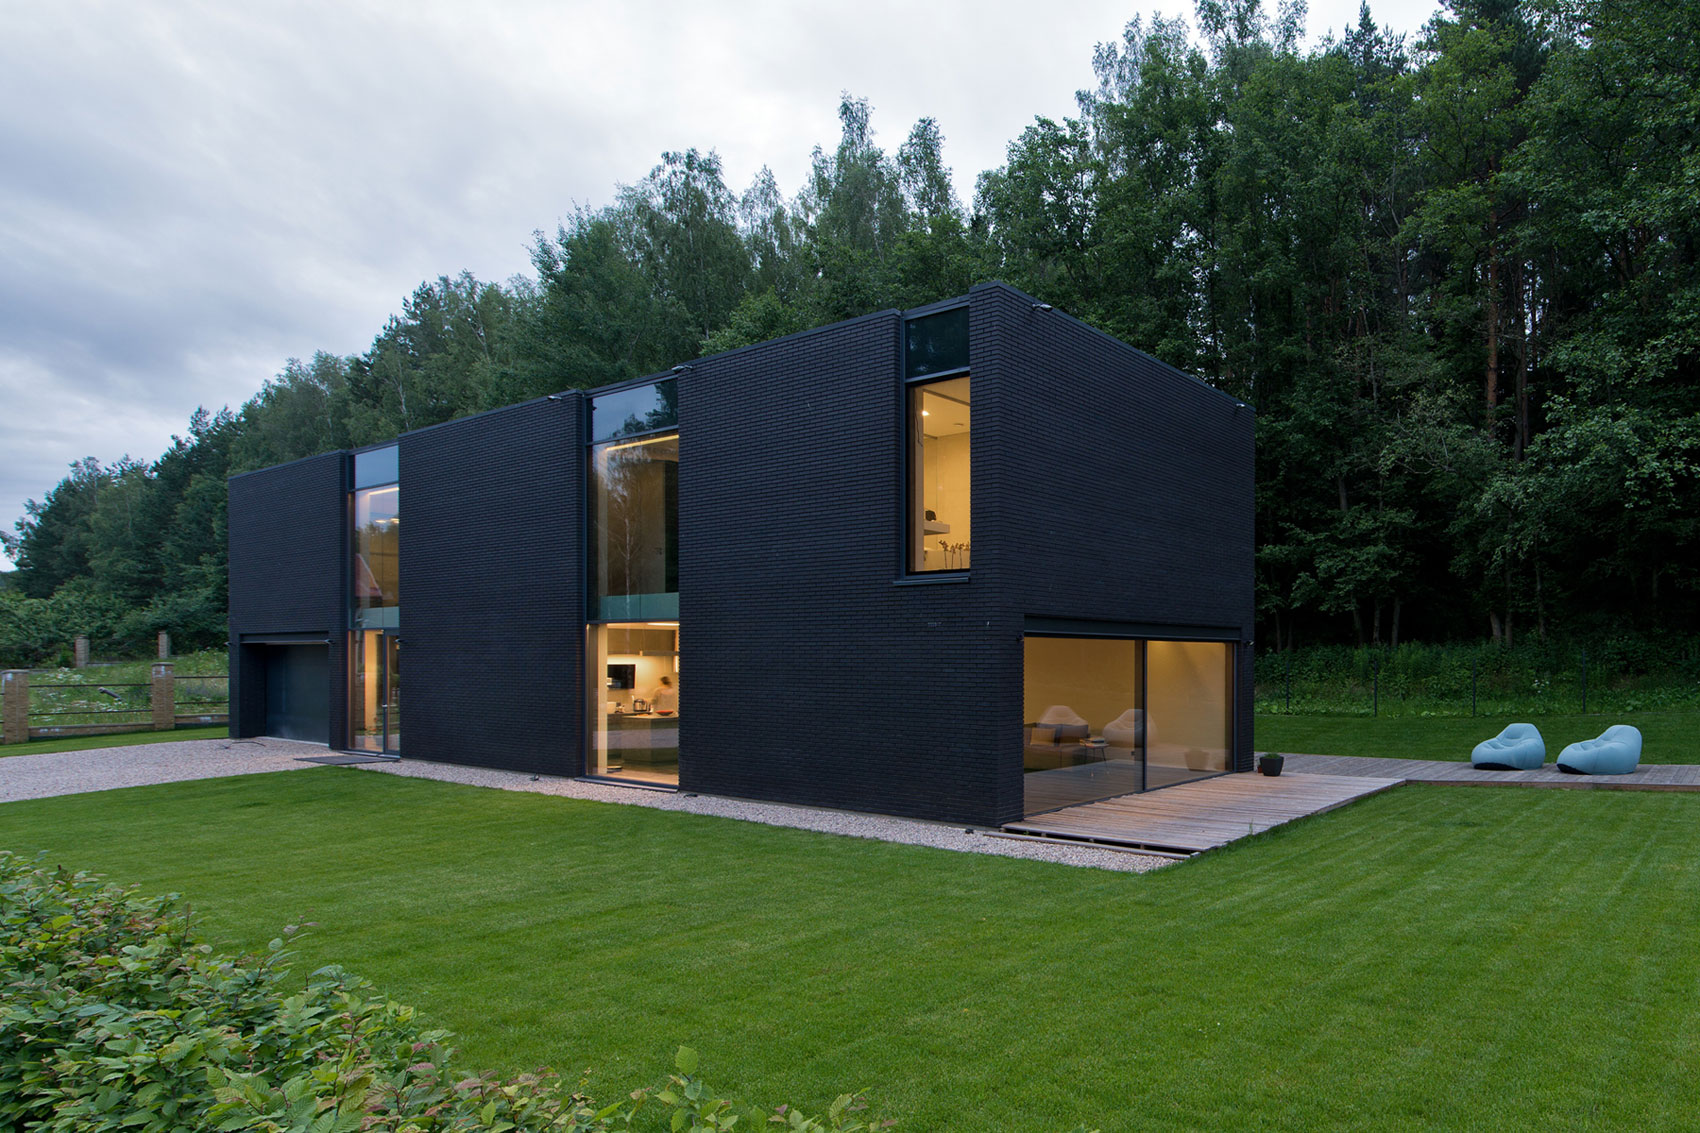 Black Boxed Family House in Minsk by Architectural Bureau G. Natkevicius & Partners-07